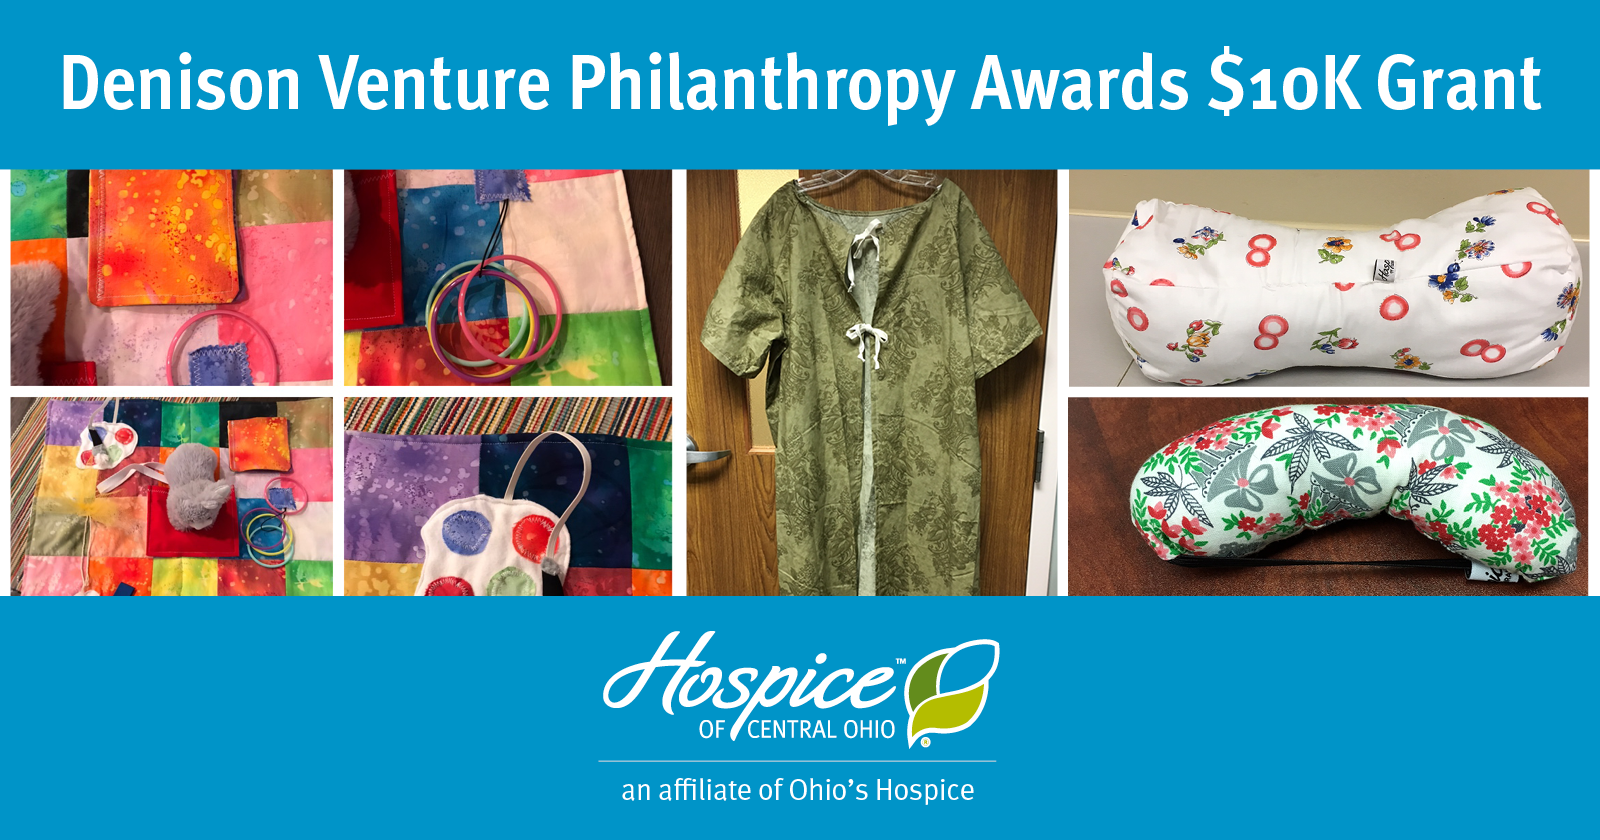 Denison Venture Philanthropy Awards Hospice Of Central Ohio $10K